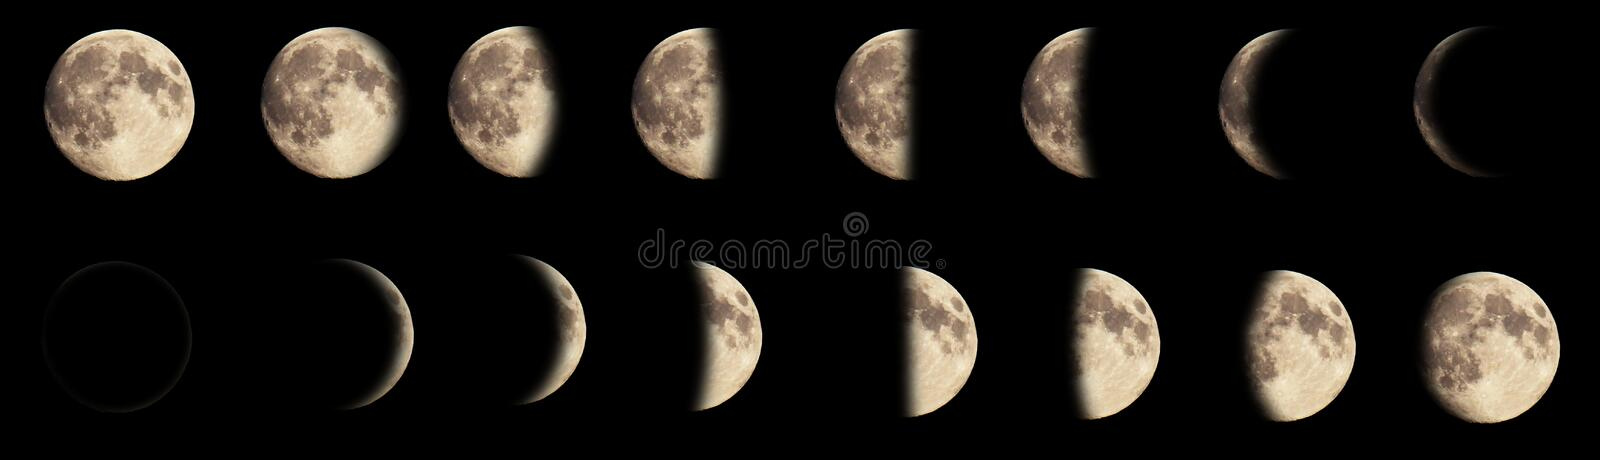 Composite image of the phases of the moon stock photography